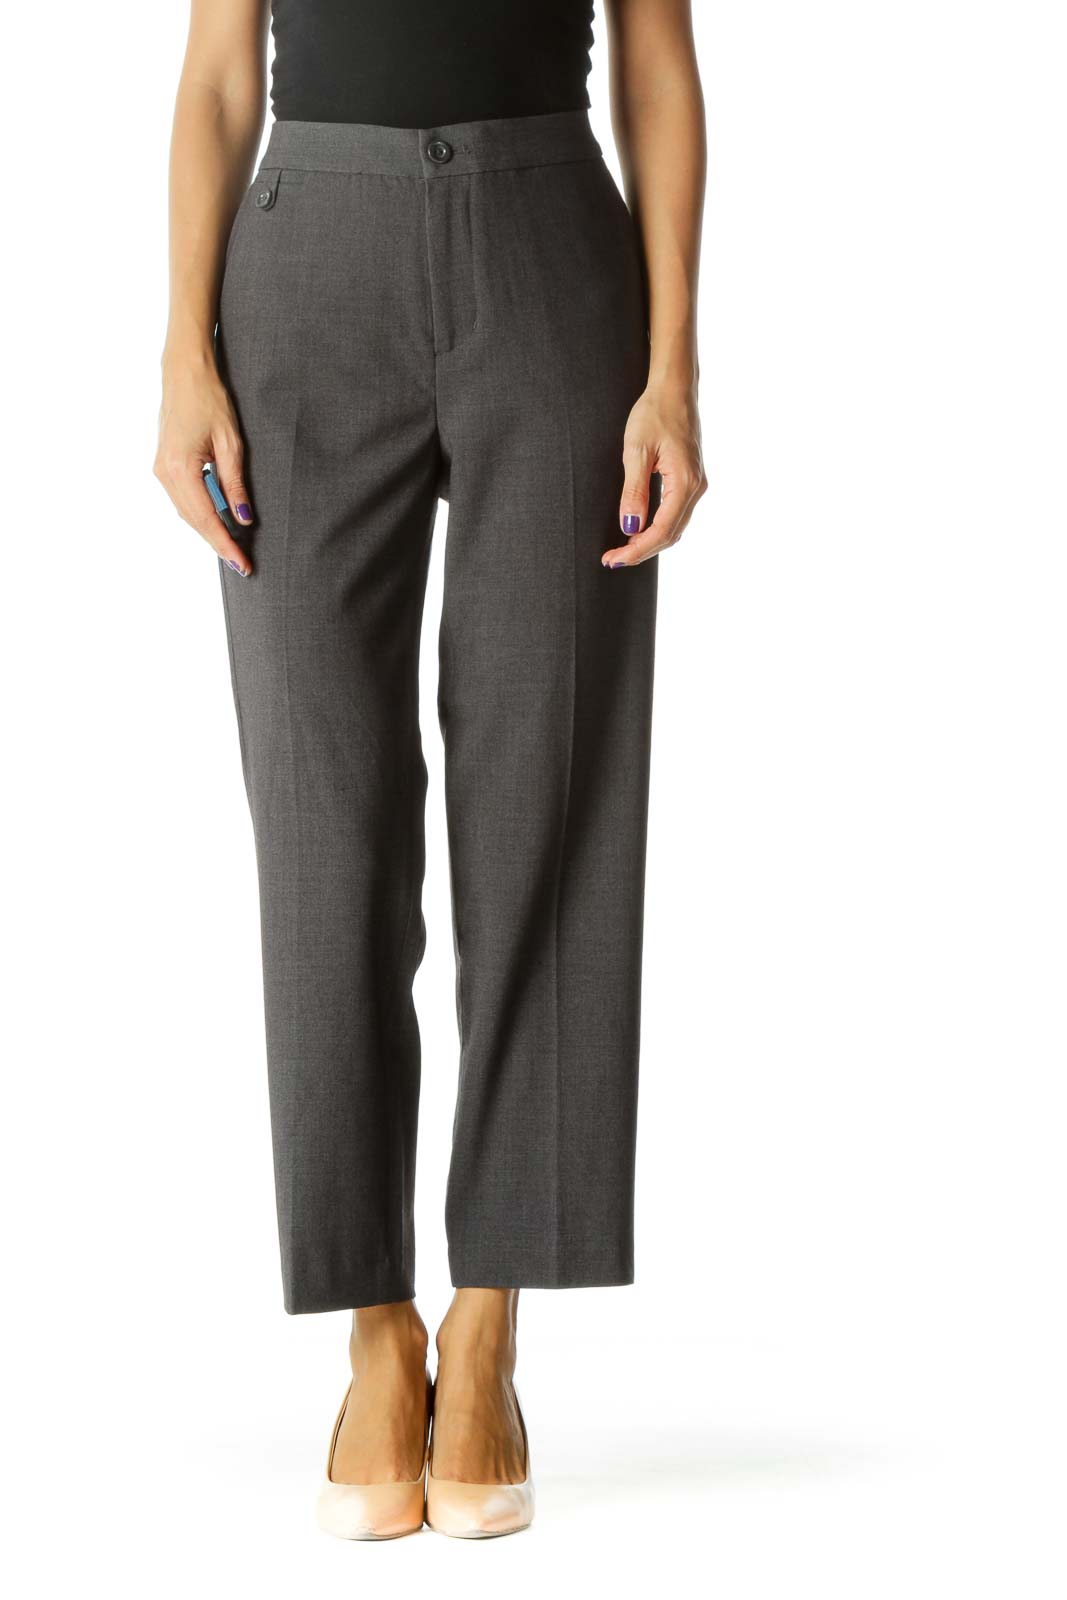 Gray Pocketed Thin Tapered Cropped Pants